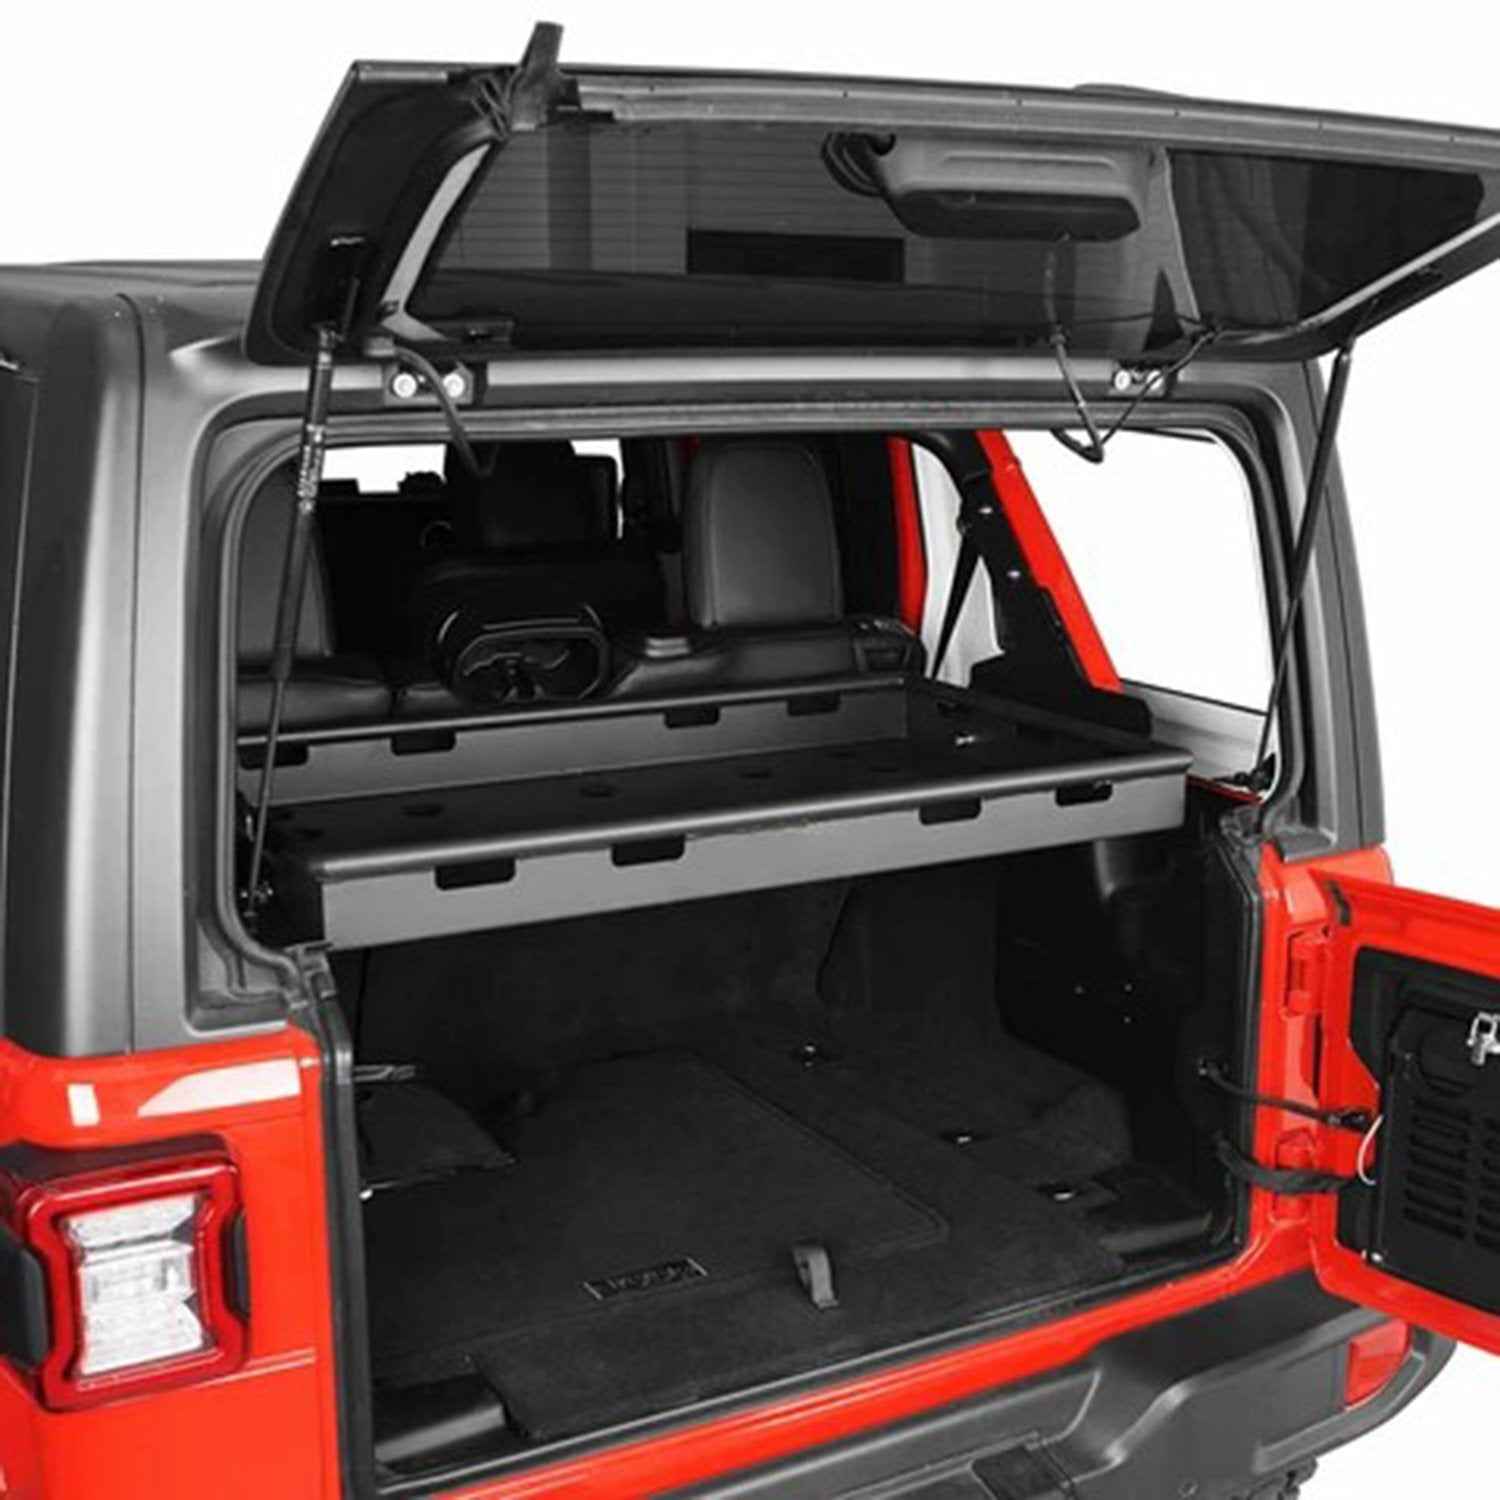 Interior Cargo Rack For 18-20 Jeep Wrangler JL 4 Doors